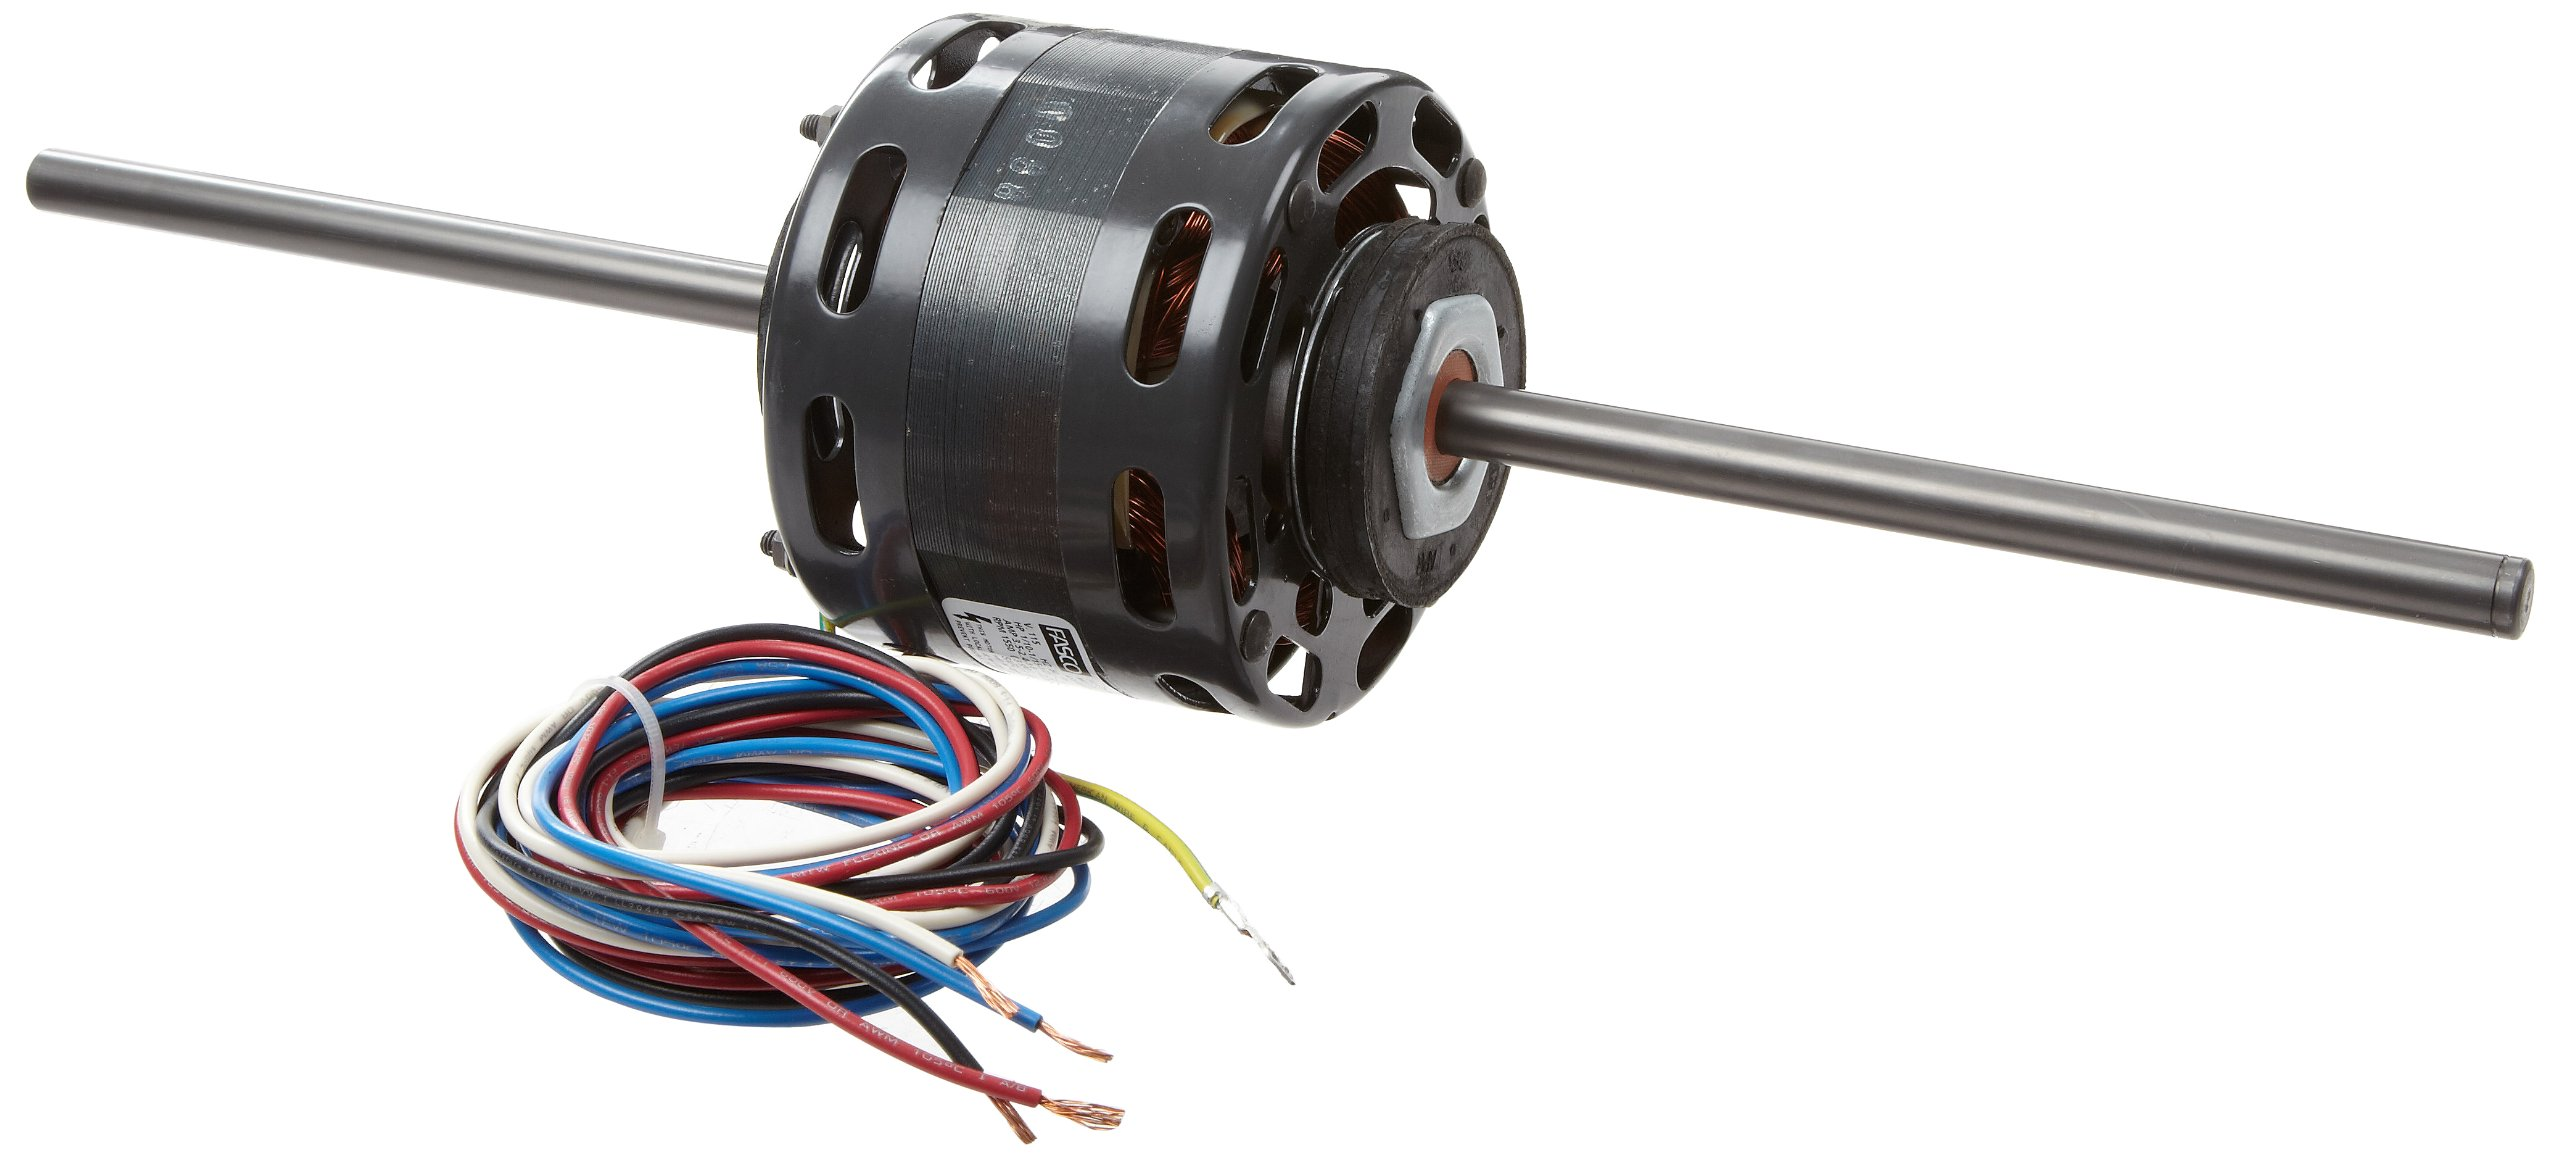 """Fasco D236 4.4"""" Frame Open Ventilation Shaded Pole Fan Coil Air-Conditioning and Heating Unit Motor with Sleeve Bearing, 1/10-1/15-1/25 HP, 1550rpm, 115V, 60Hz, 3.5-2.4-1.8 amps, 3-3/8"""" Motor length"""